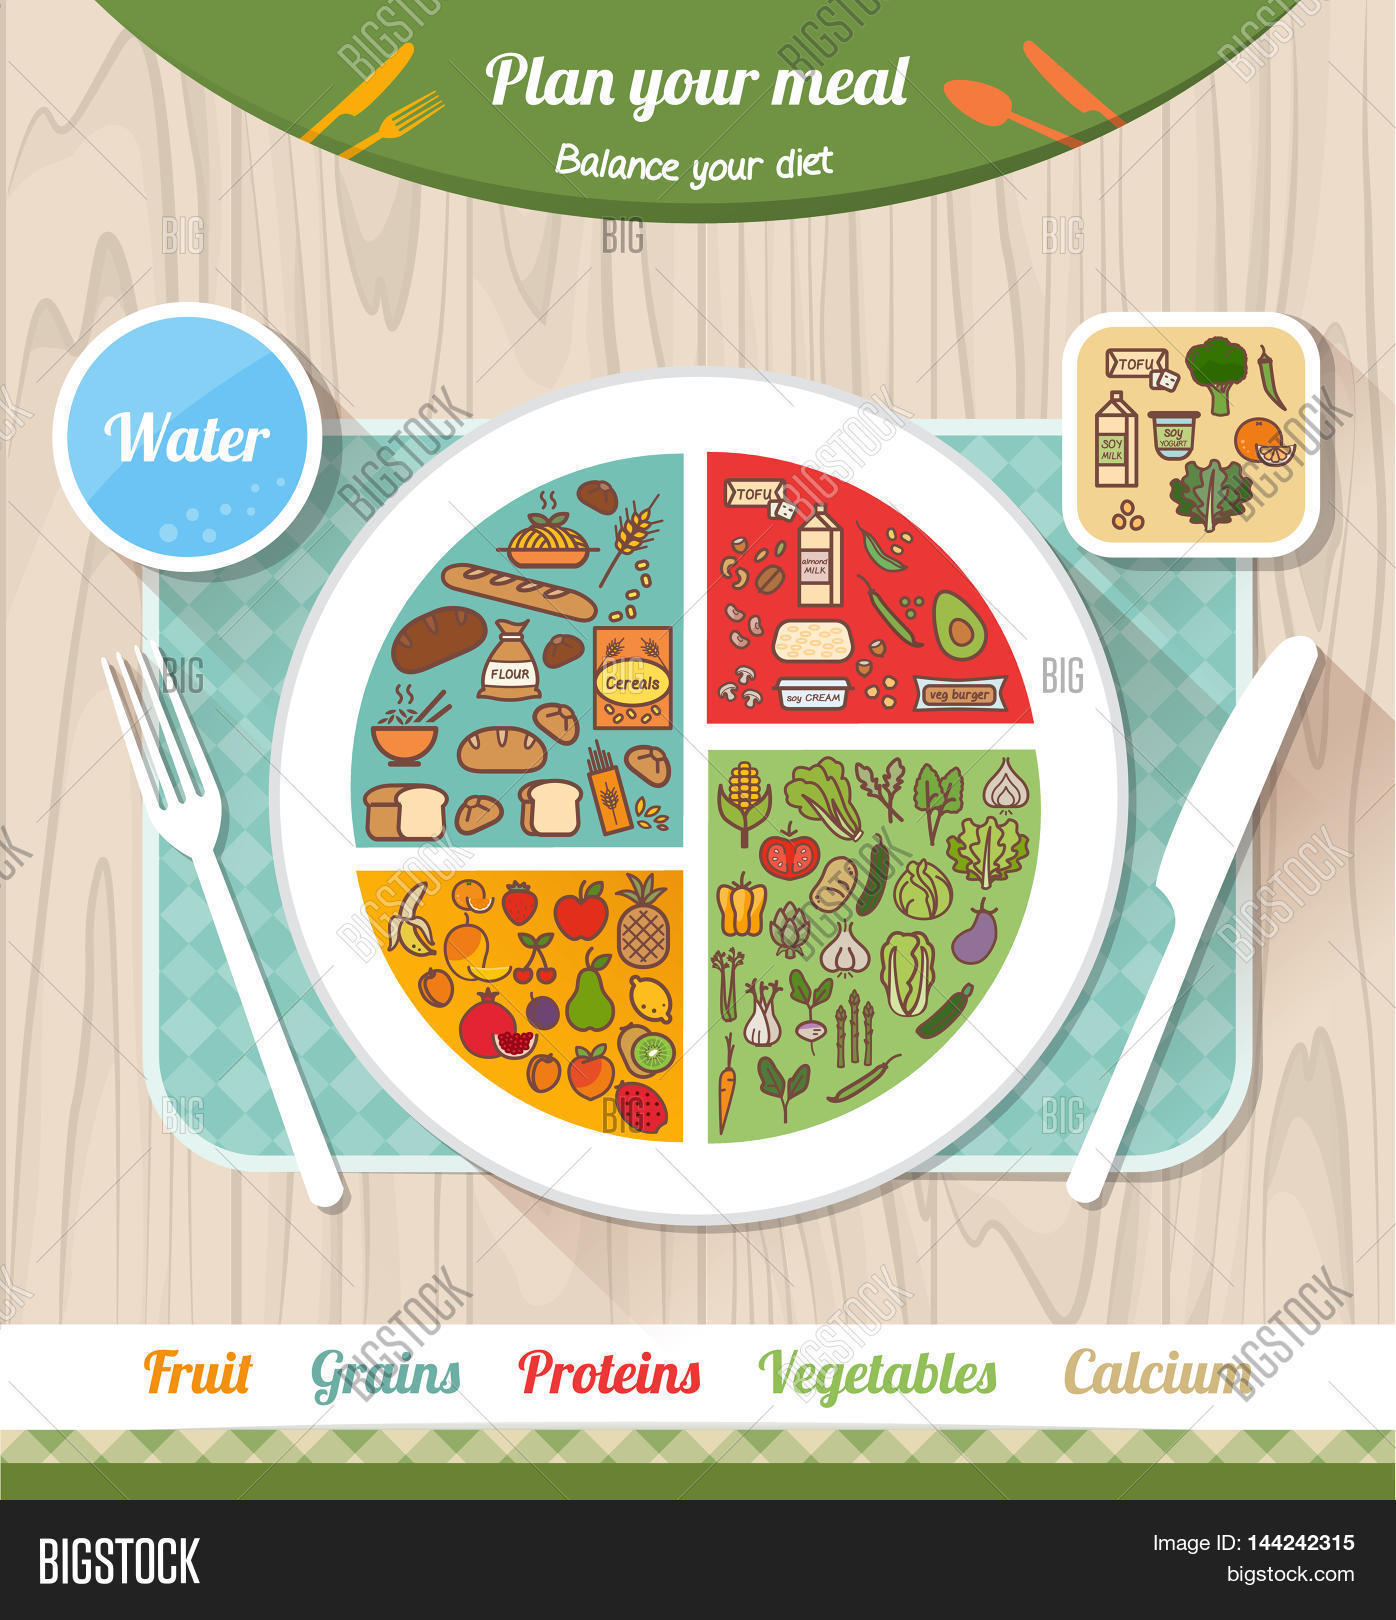 Vegan healthy diet eatwell plate vector photo bigstock vegan healthy diet and eatwell plate concept food icons and portions on a pie chart nvjuhfo Image collections